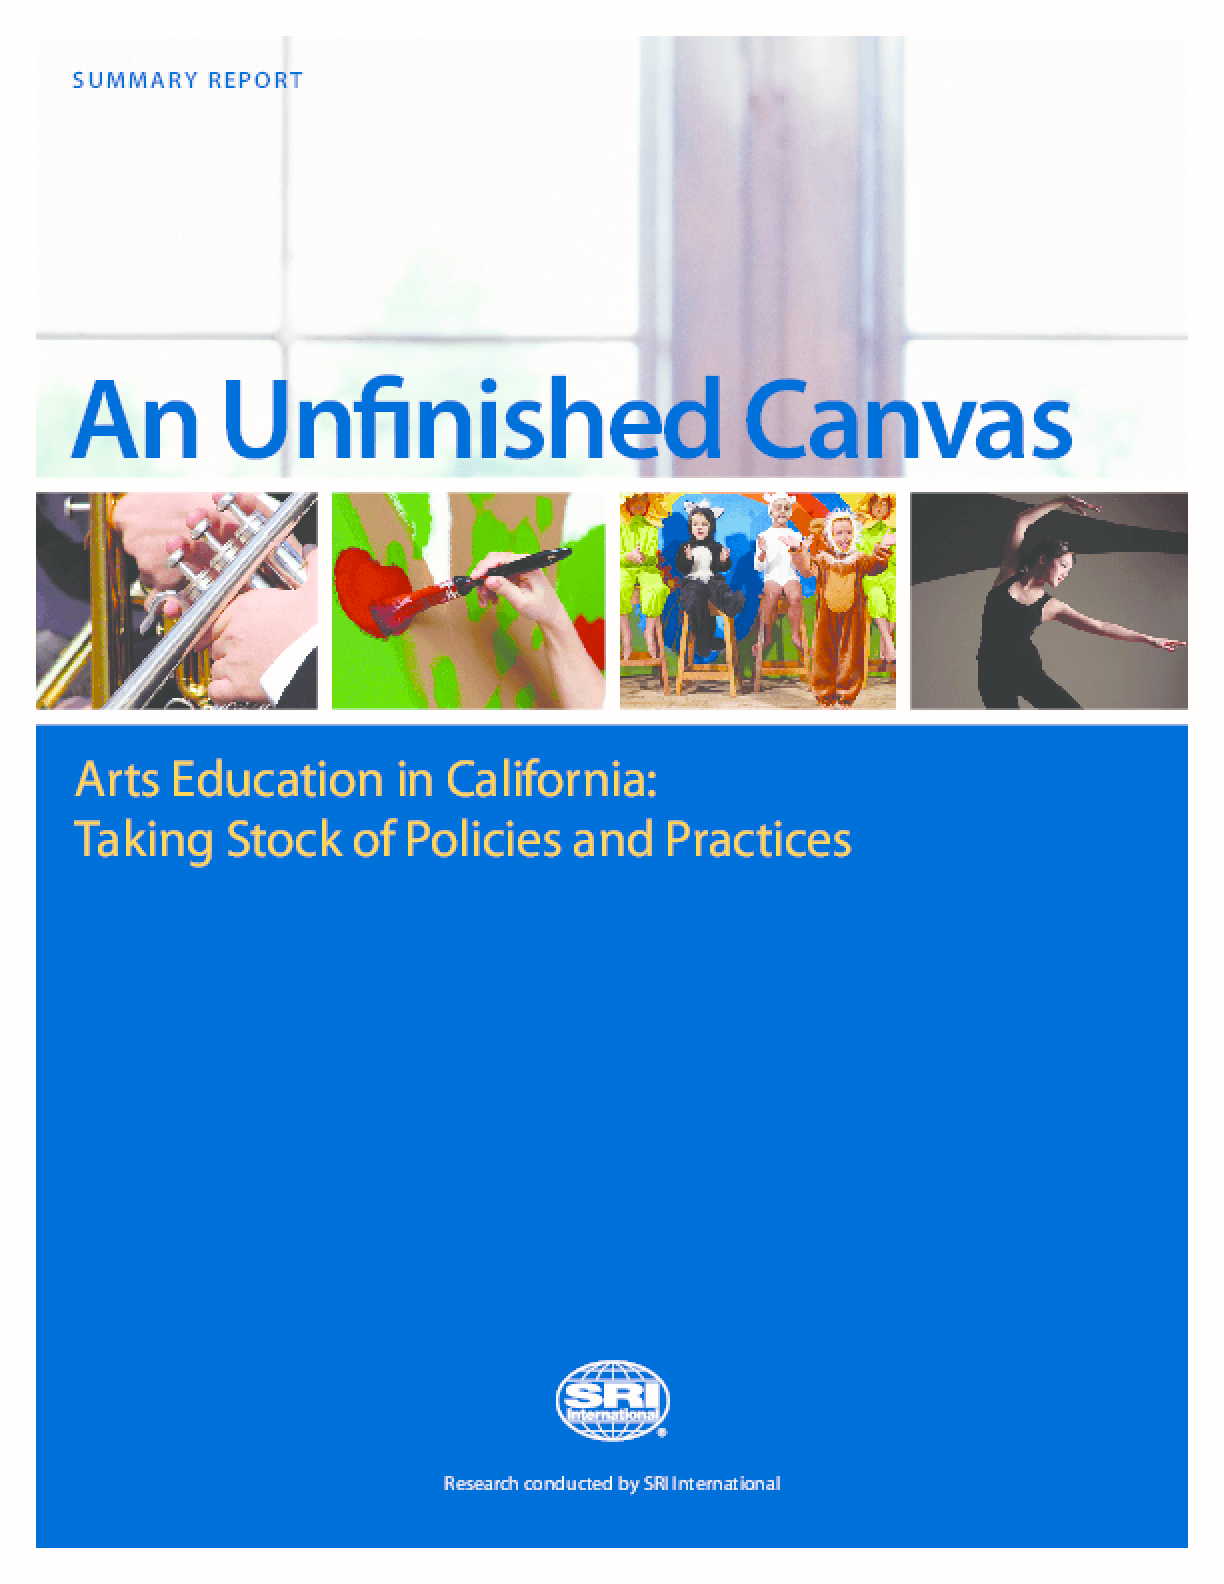 An Unfinished Canvas: Arts Education in California: Taking Stock of Policies and Practices